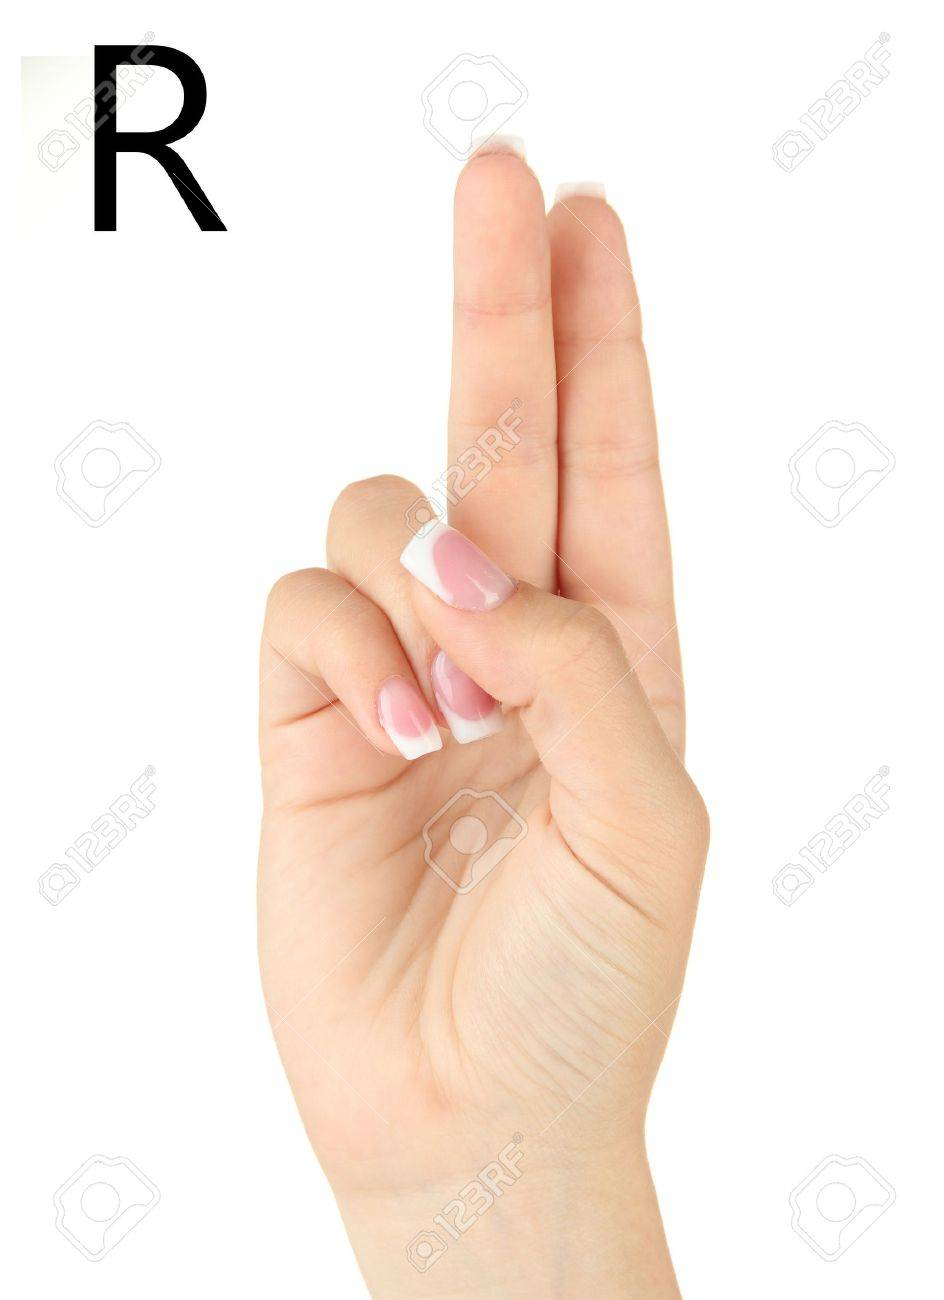 finger spelling the alphabet in american sign language asl letter r stock photo